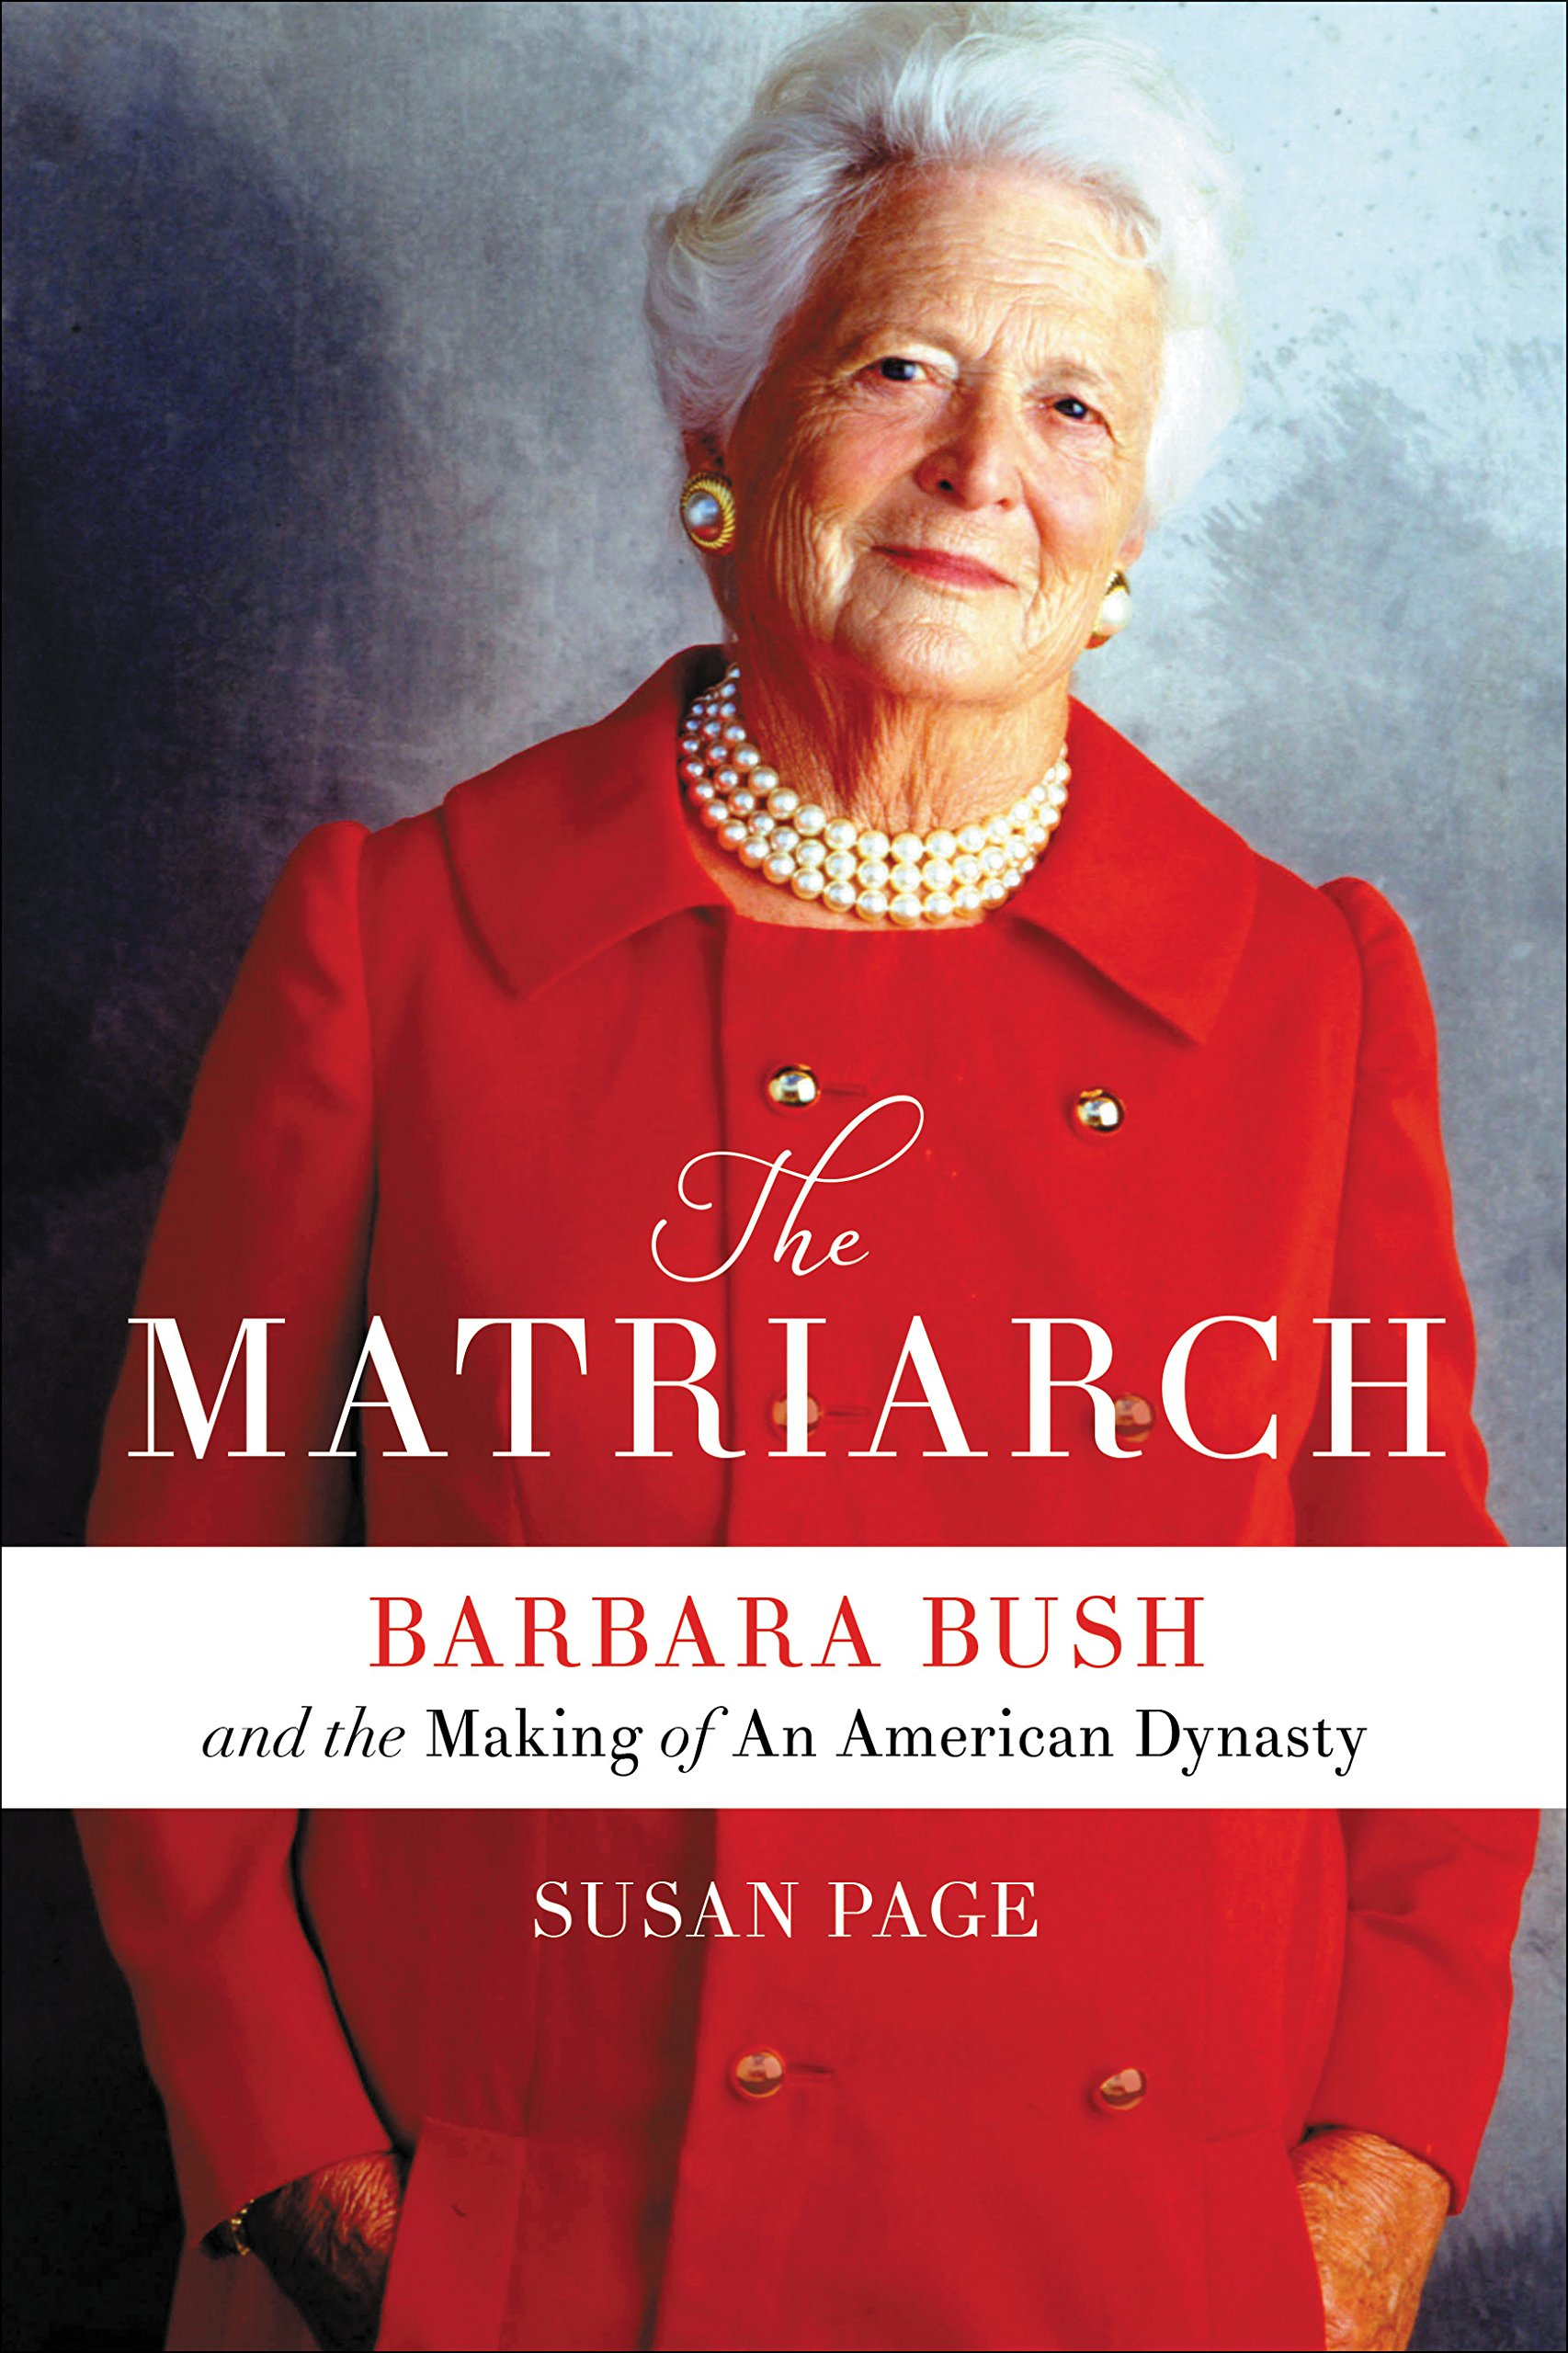 Barbara Bush Matriarch 9781538713648/